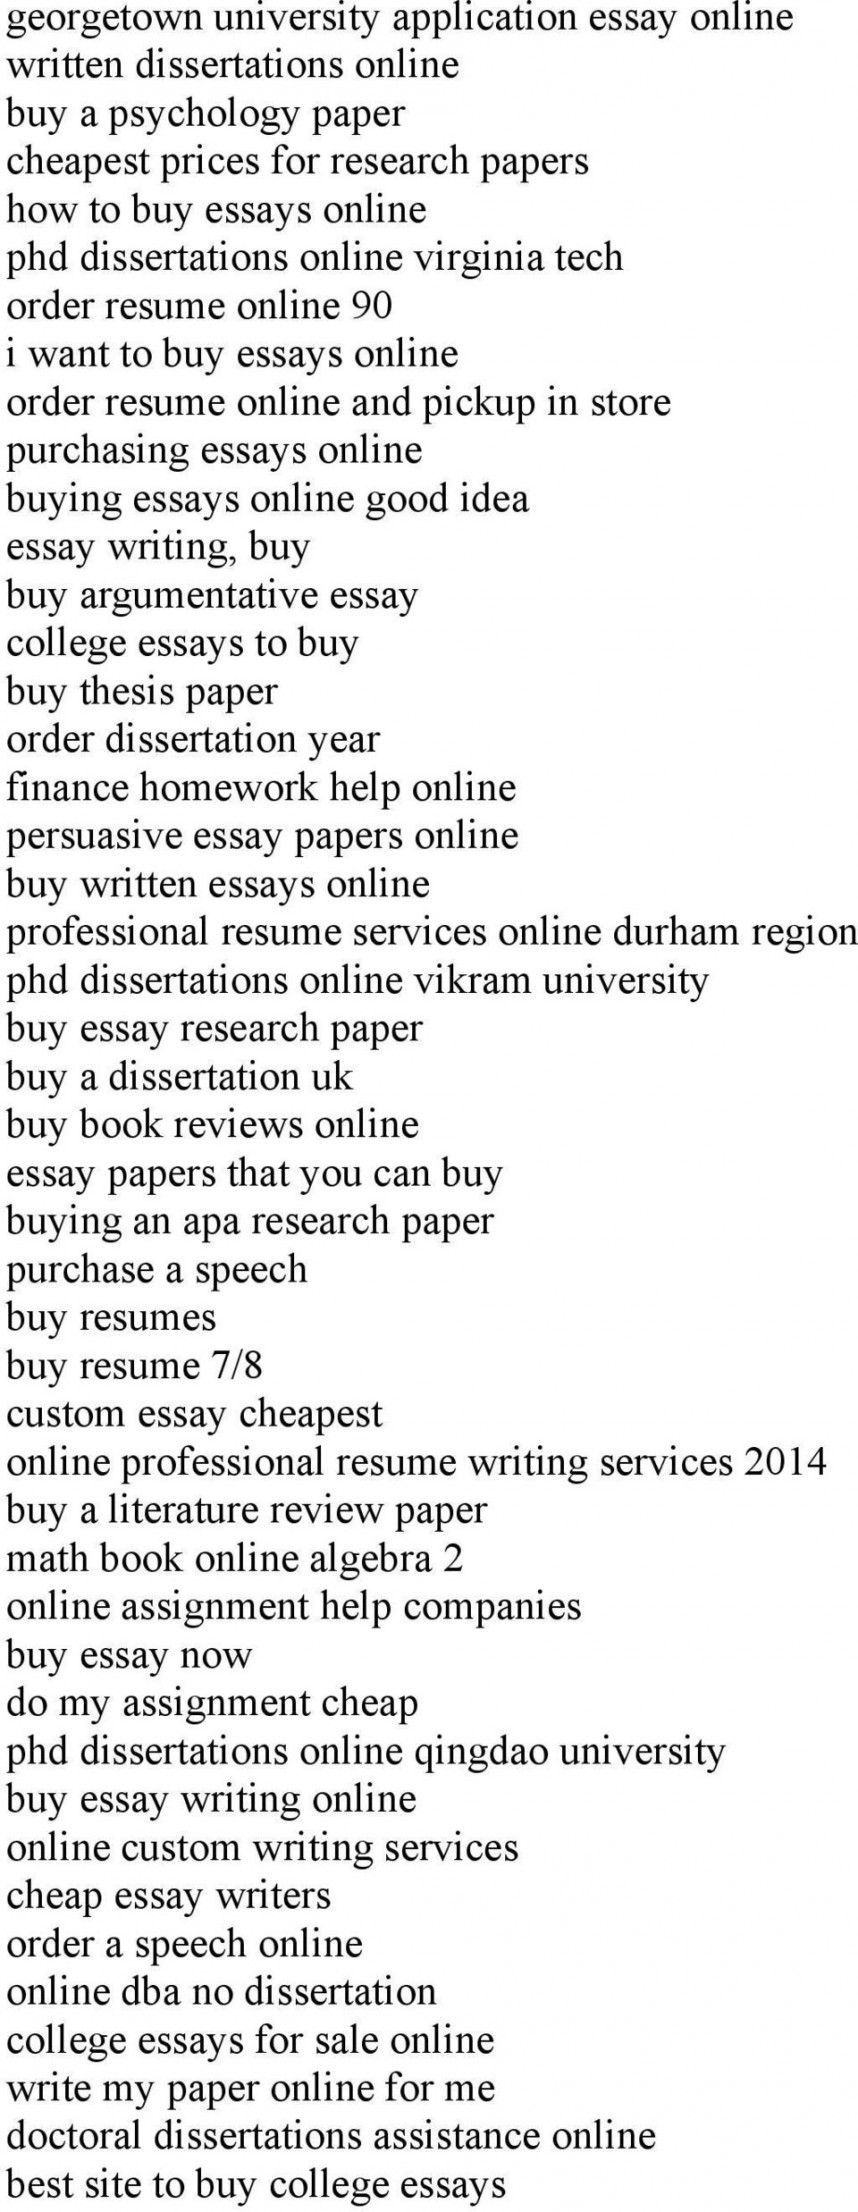 005 Buying Researchs Online Reviews Page 4 Staggering Research Papers